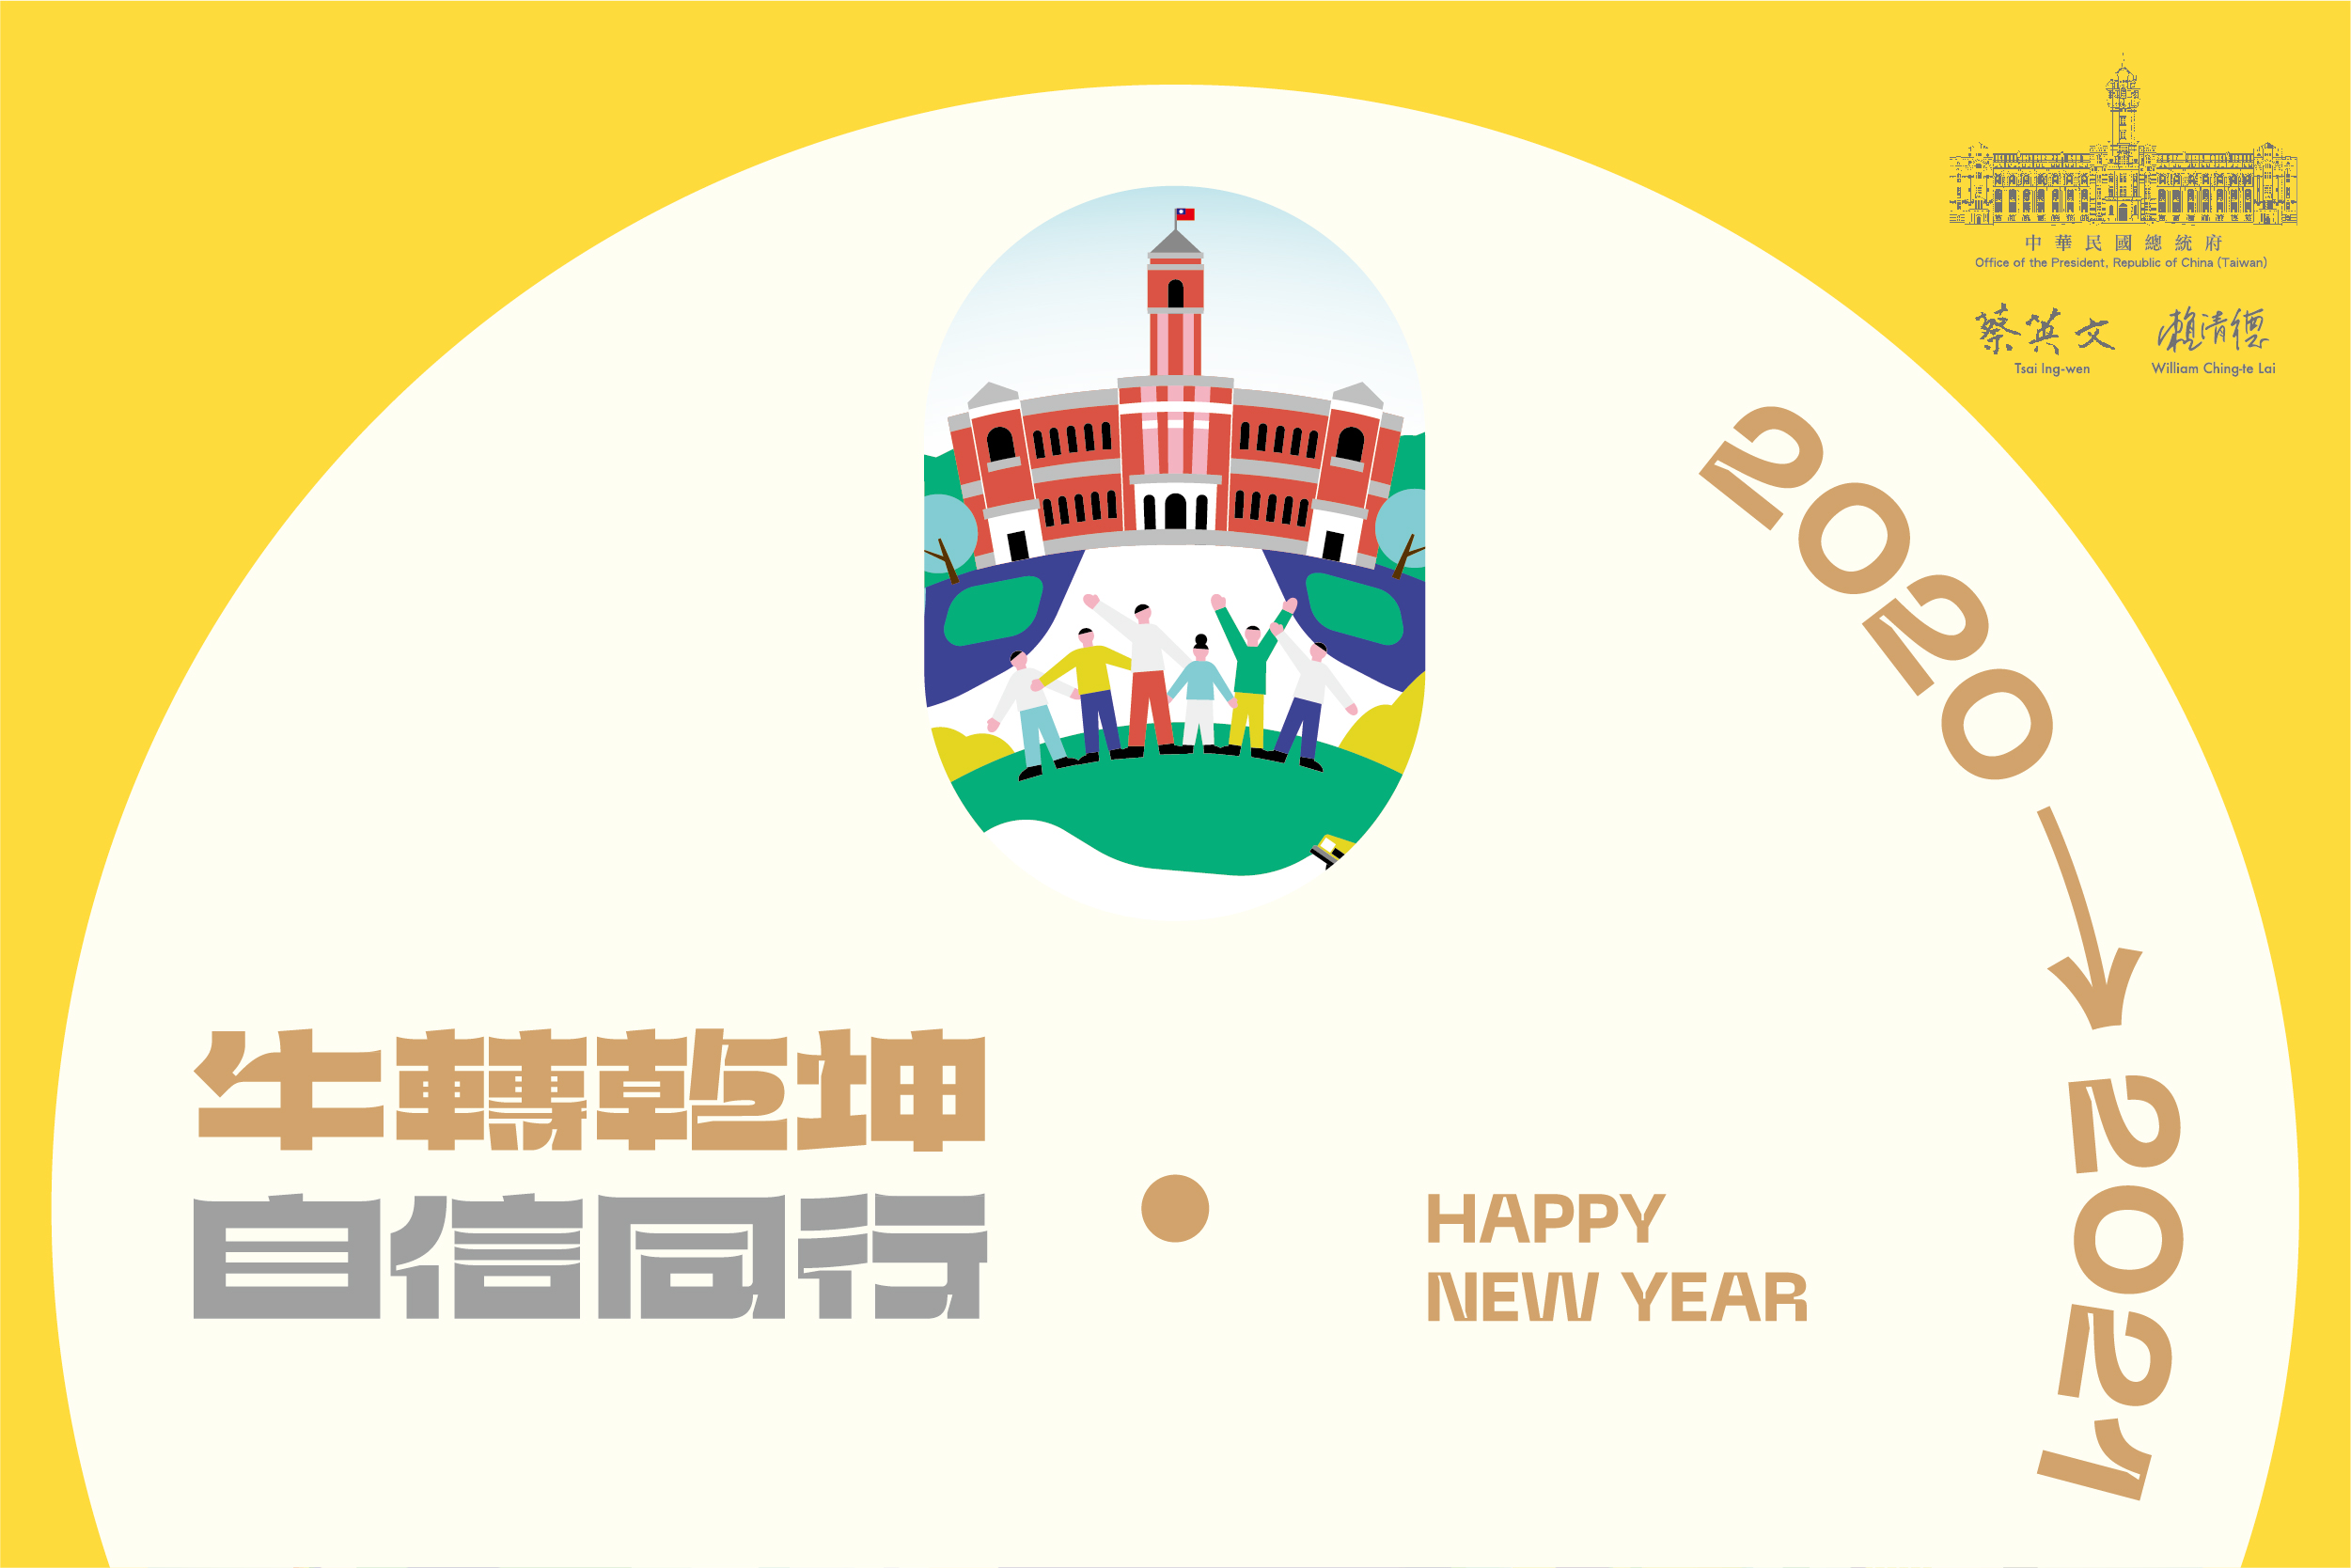 President Tsai and Vice President Chen's 2021 New Year's Ecards